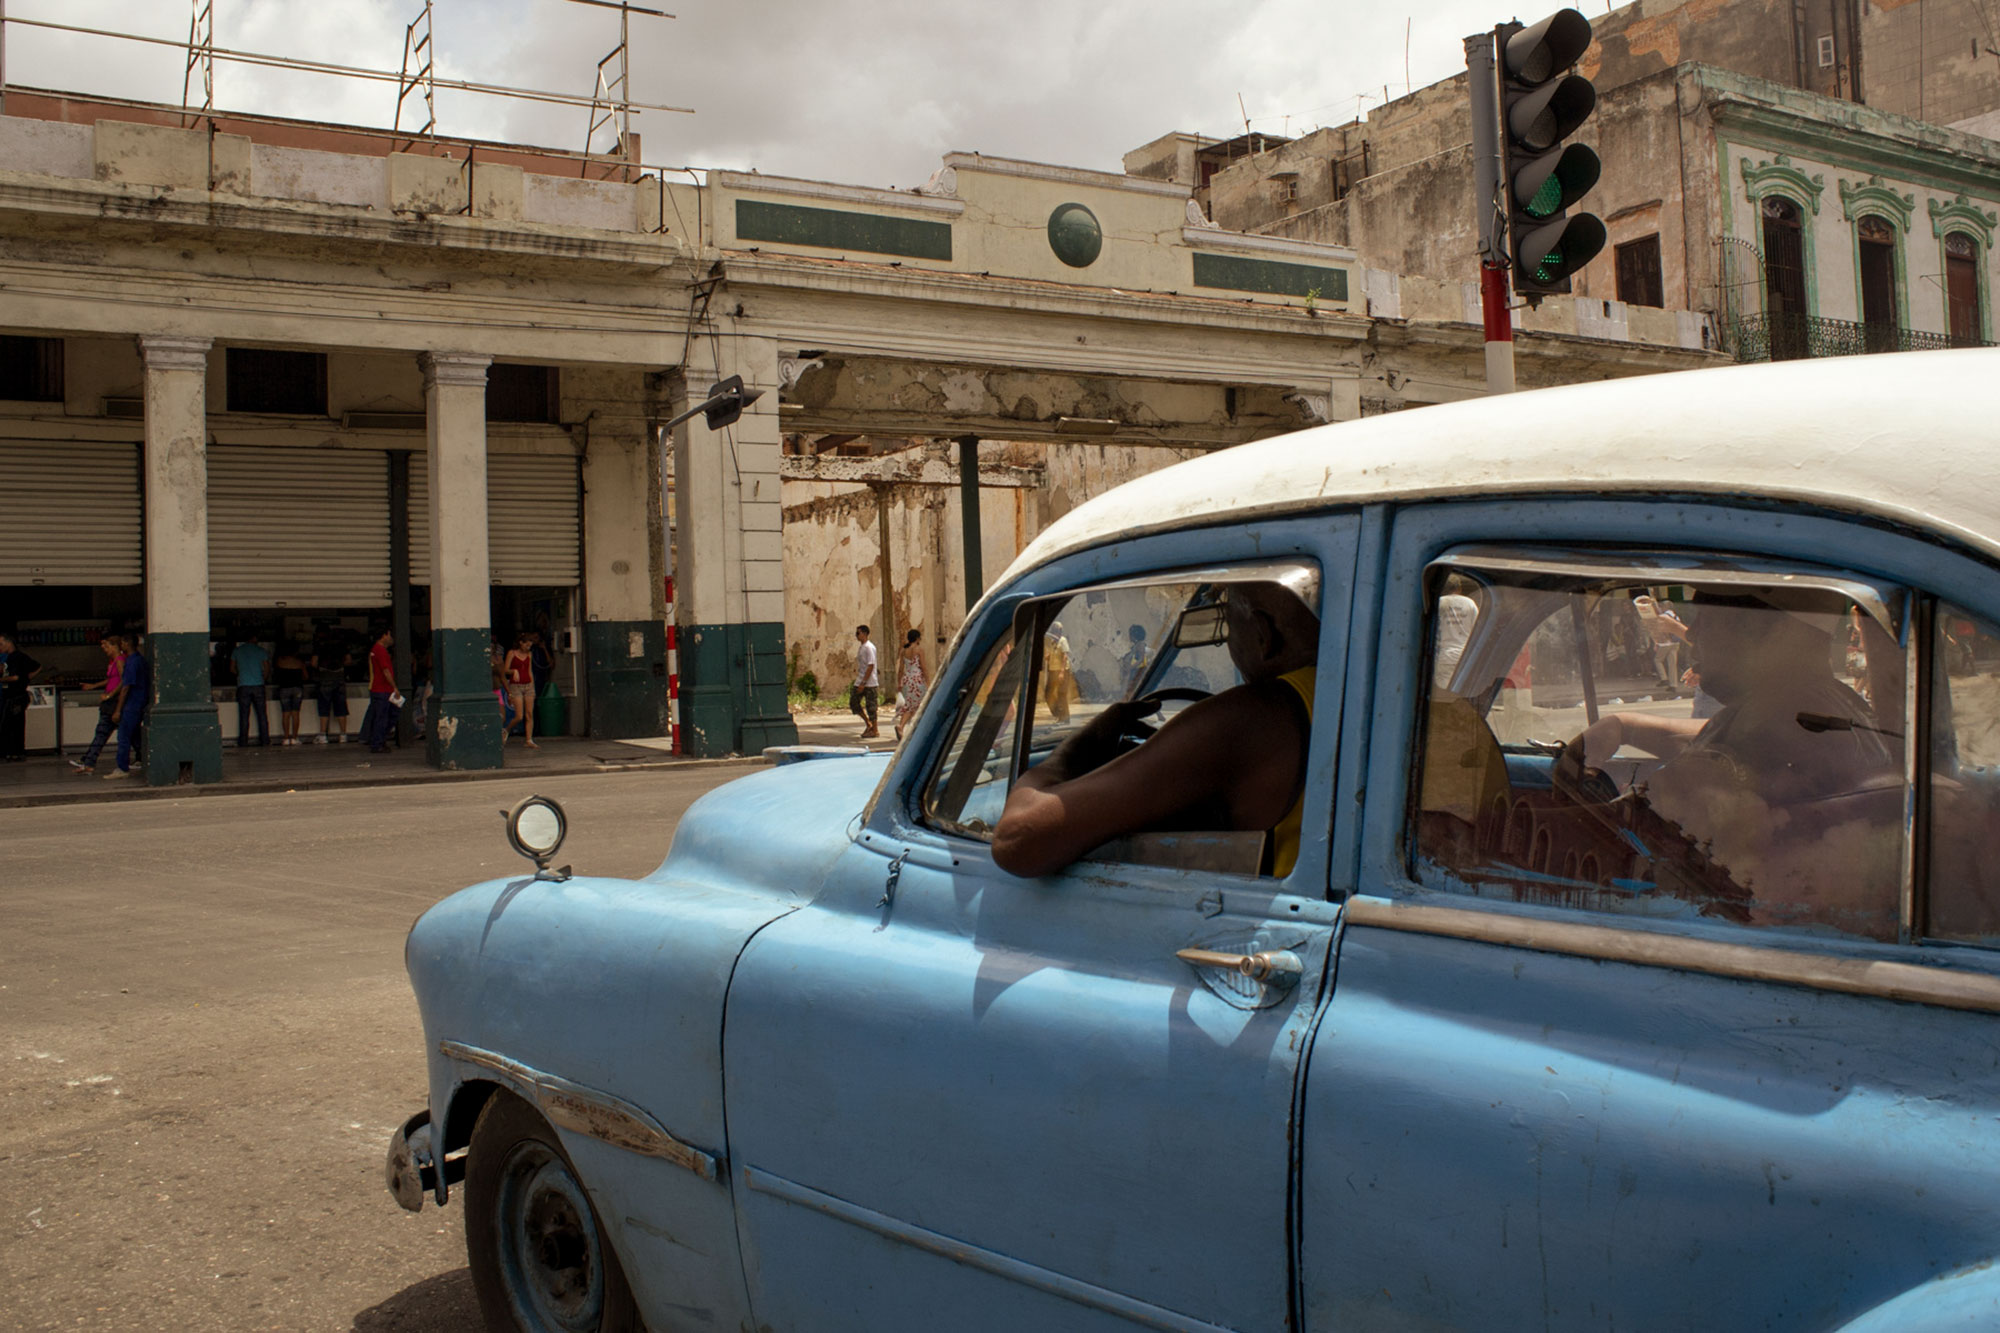 wojtek-jakubiec-photographer-montreal-cuba-havana-street-documentary-blue-car-red-light-.jpg